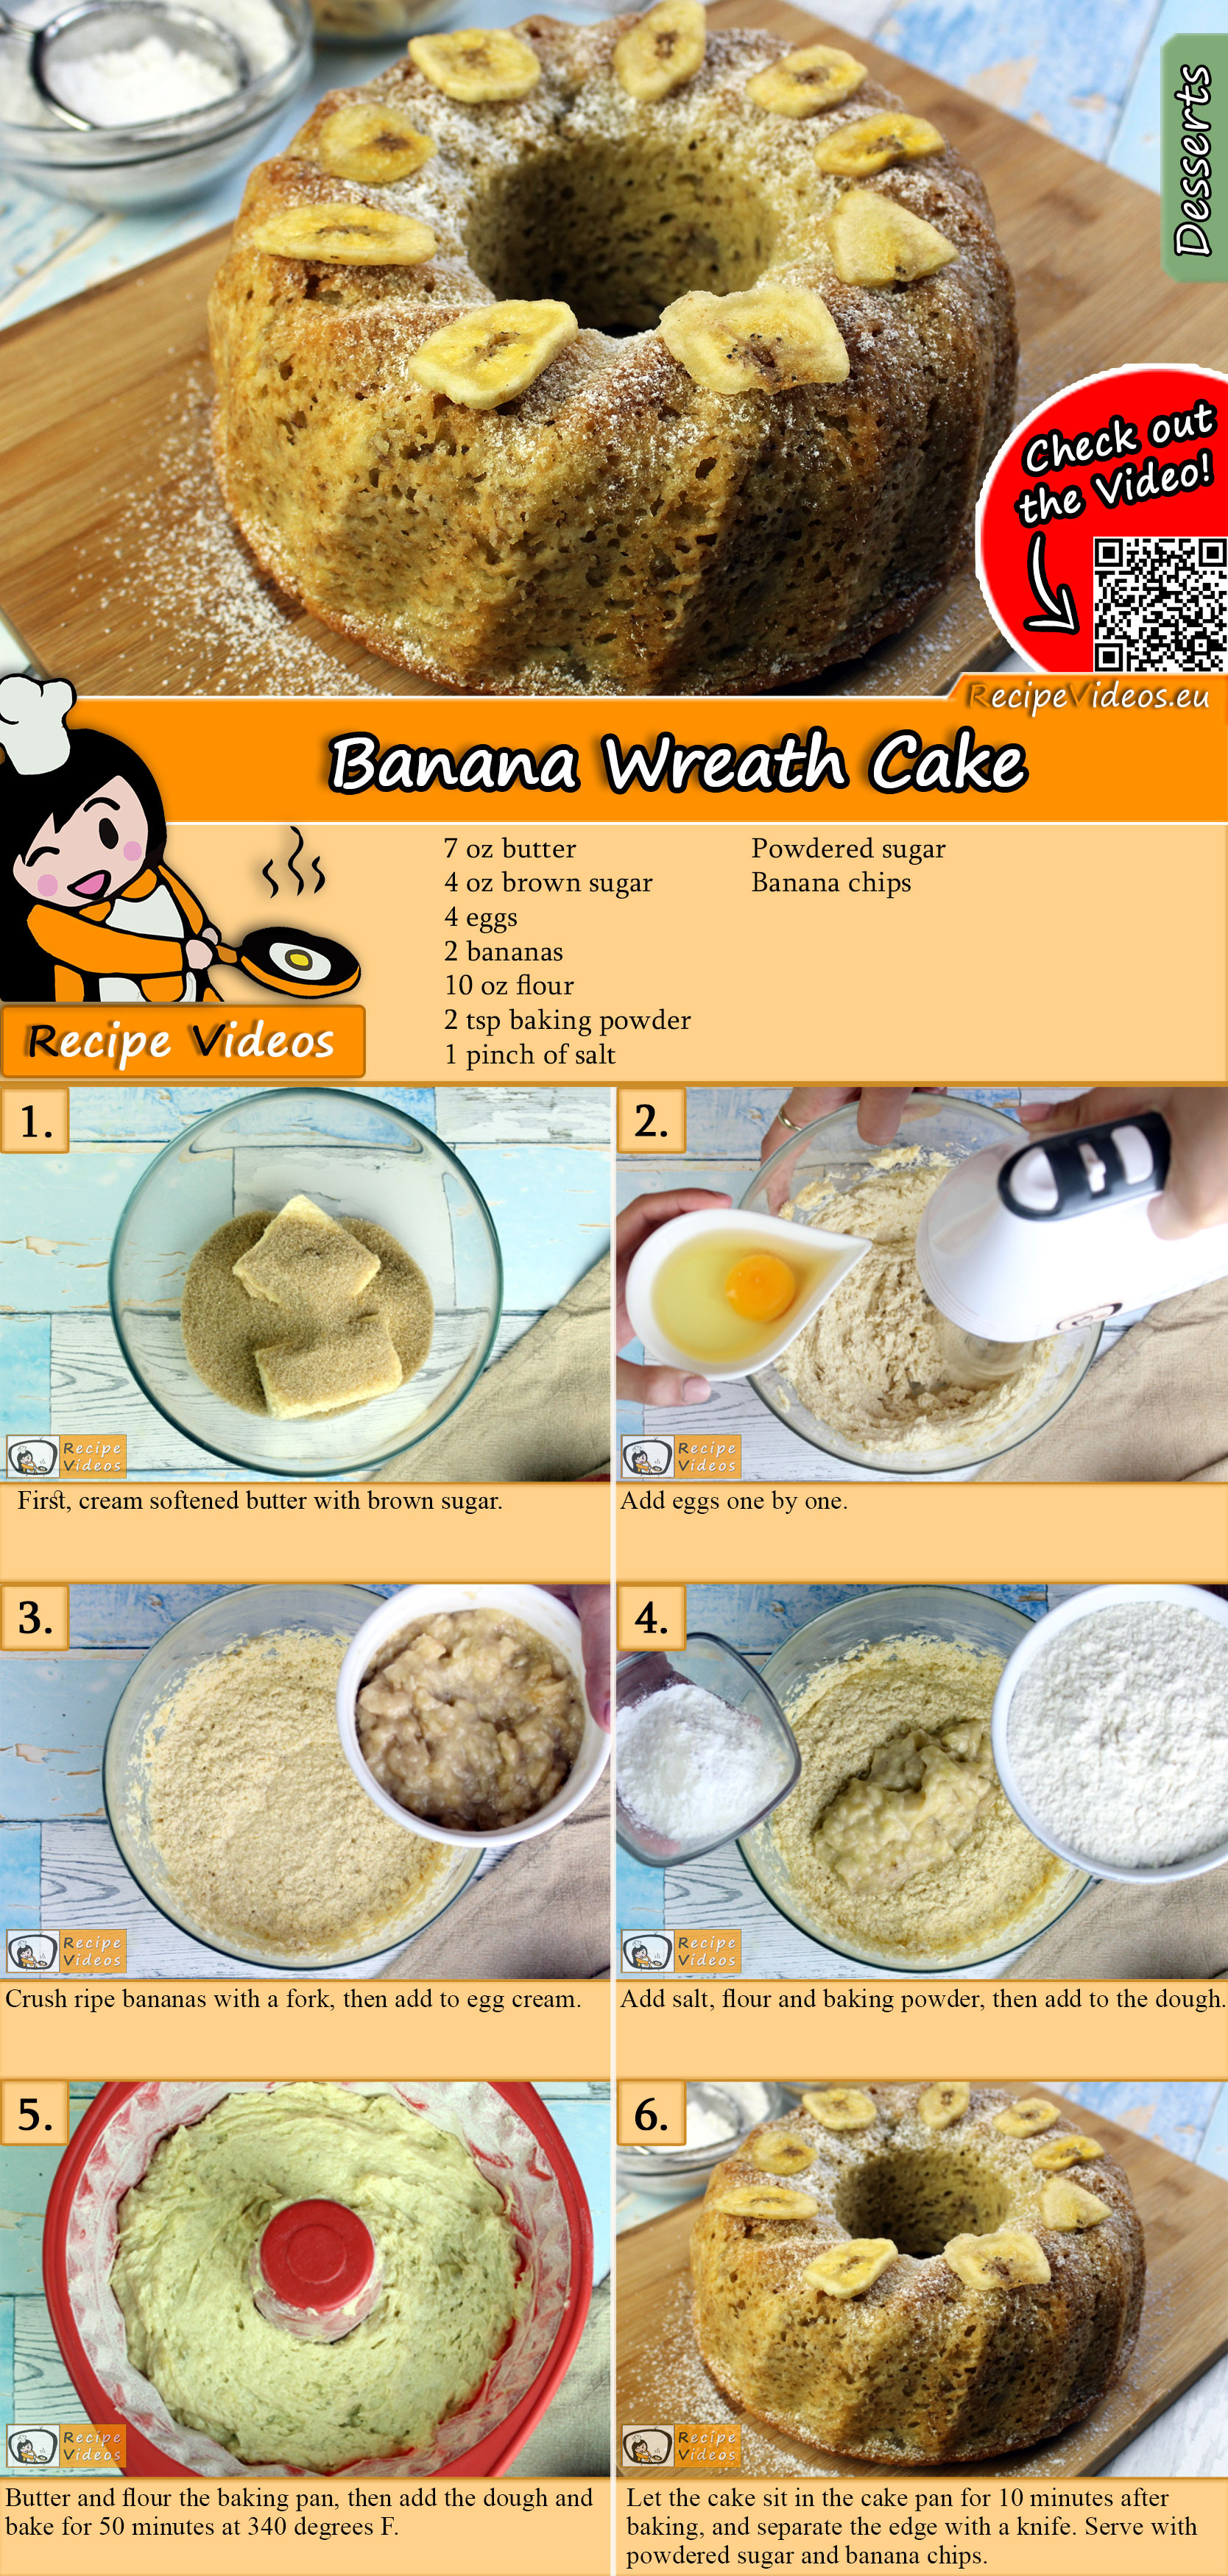 Banana wreath cake recipe with video